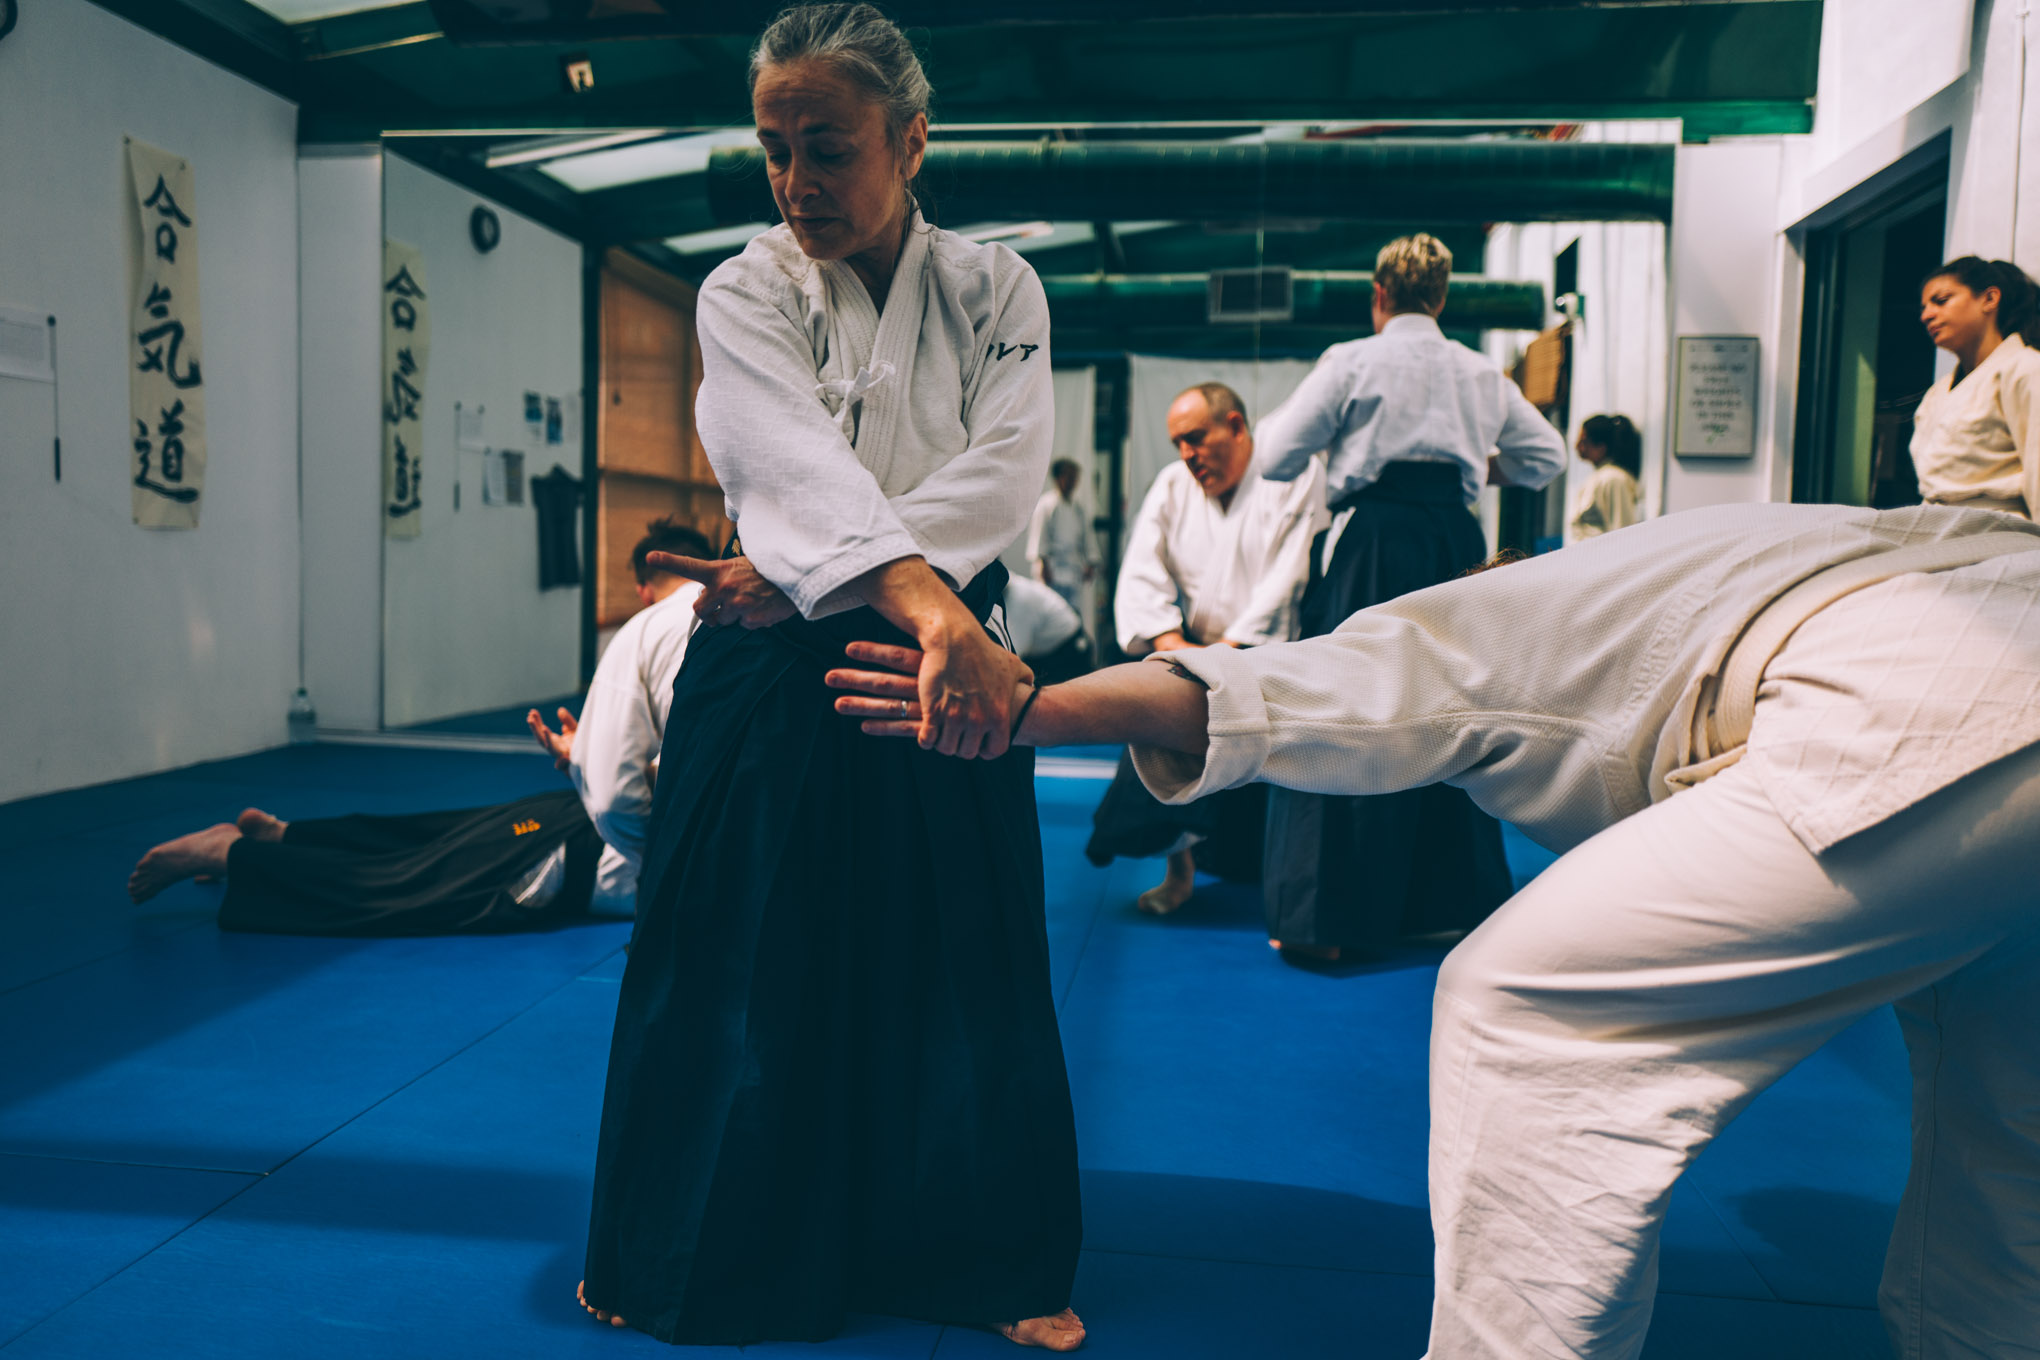 Claire Keller explains a technique during an Aikido class at Bushwick Dojo in Brooklyn, New York